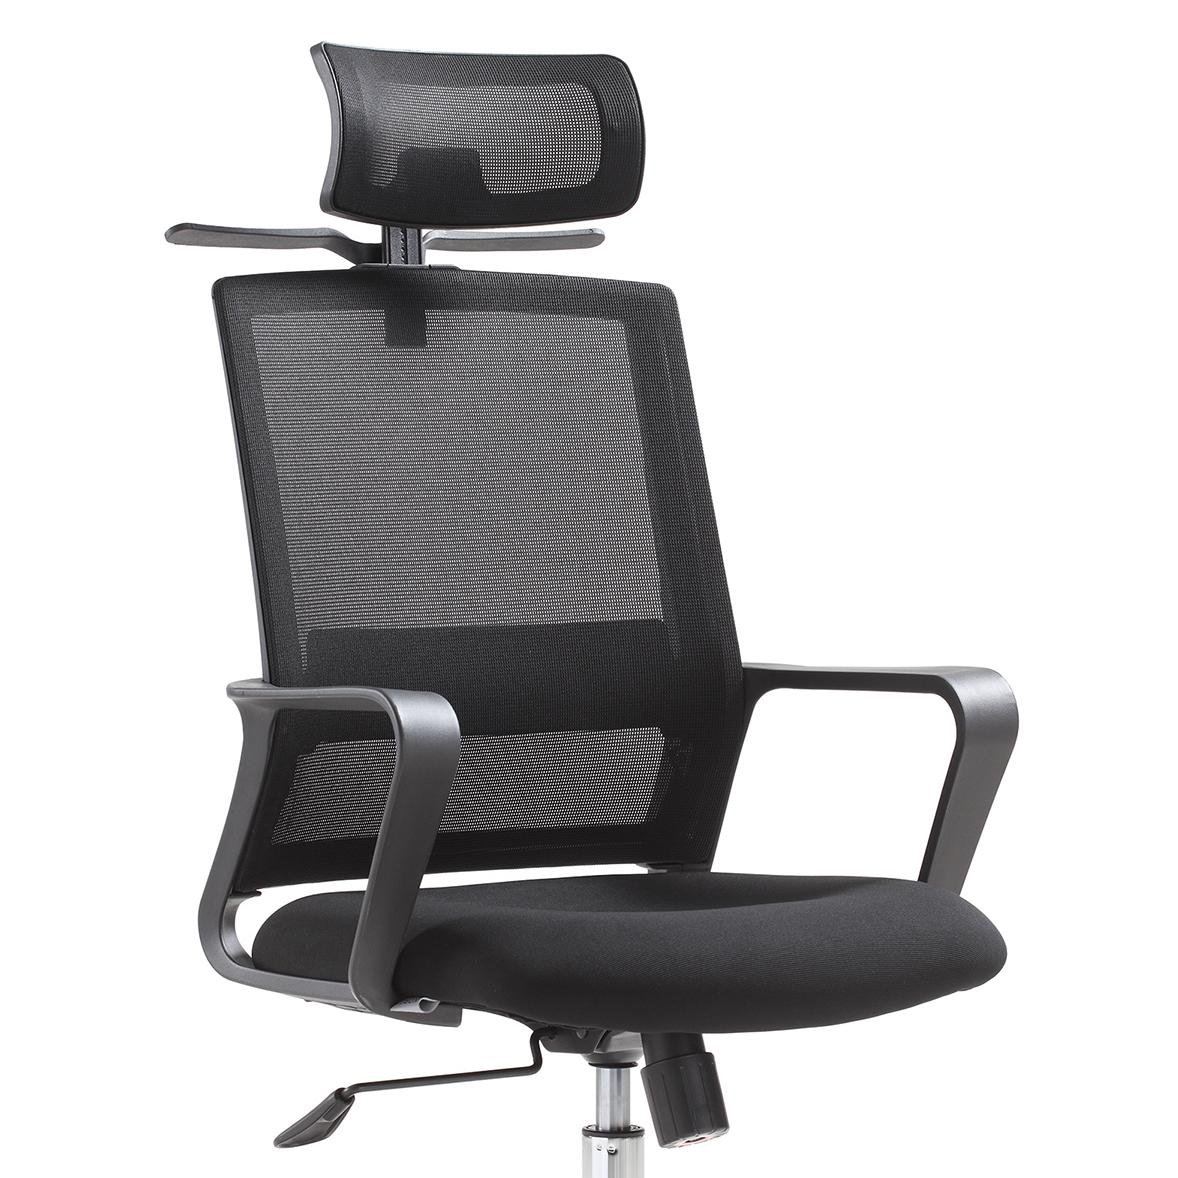 Locking wheel Unique design Modern multifunctional adjustable metal office chair